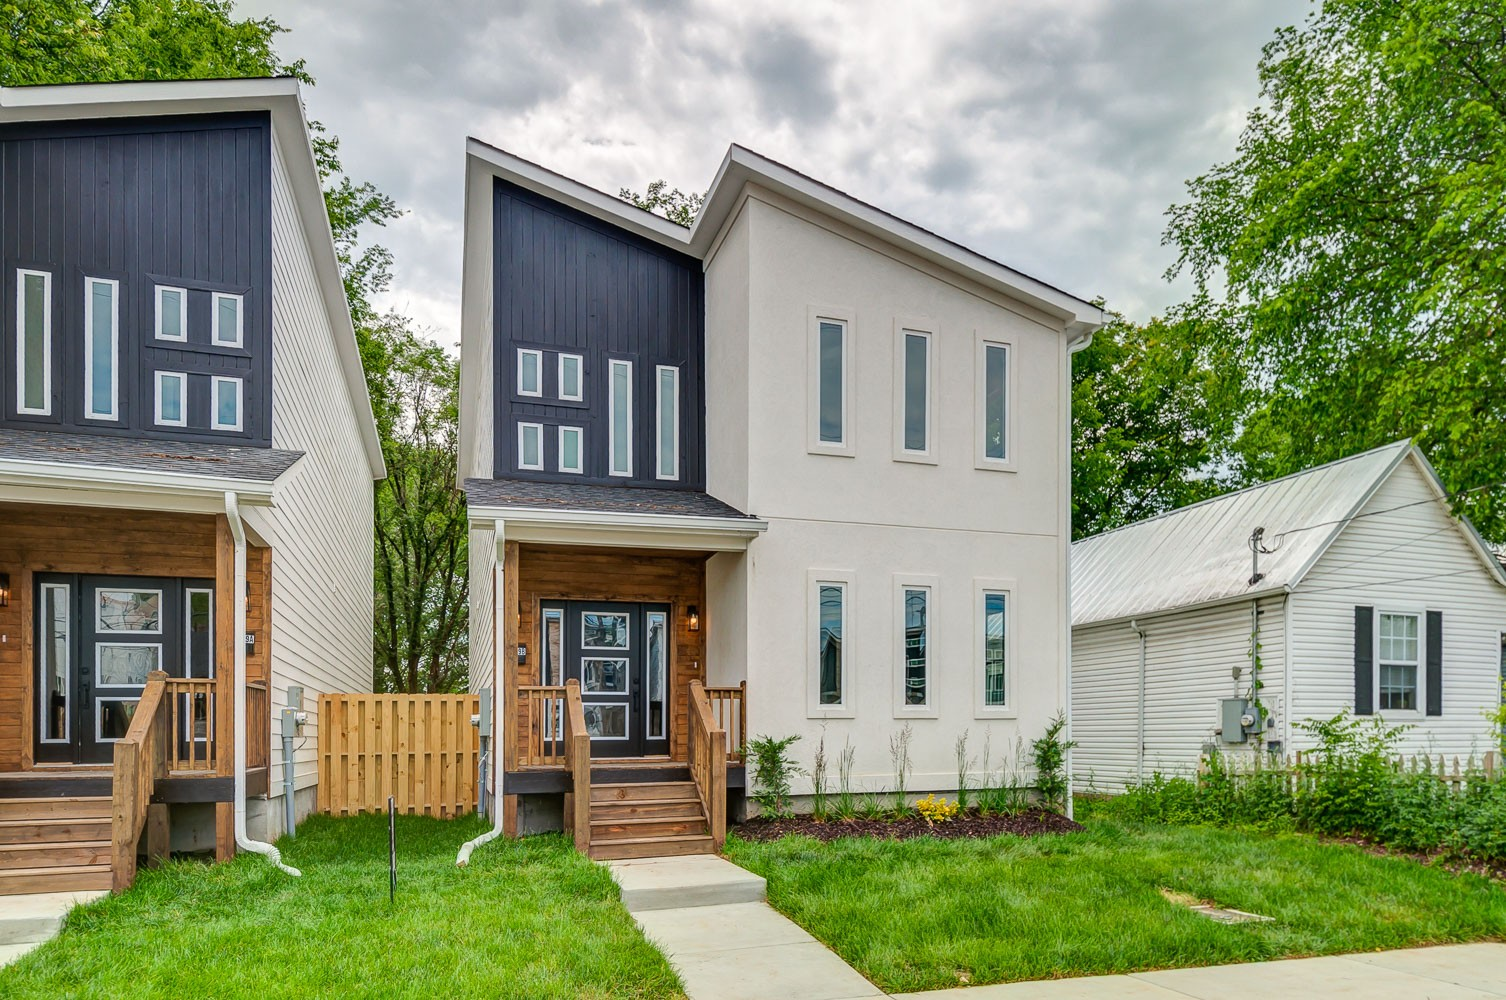 Stunning modern new build close to FARMER'S MARKET, DOWNTOWN, and GERMANTOWN. Location and design make this gorgeous home a must-see. Alley access parking pad and GARAGE!  Photos are from staged unit next door.